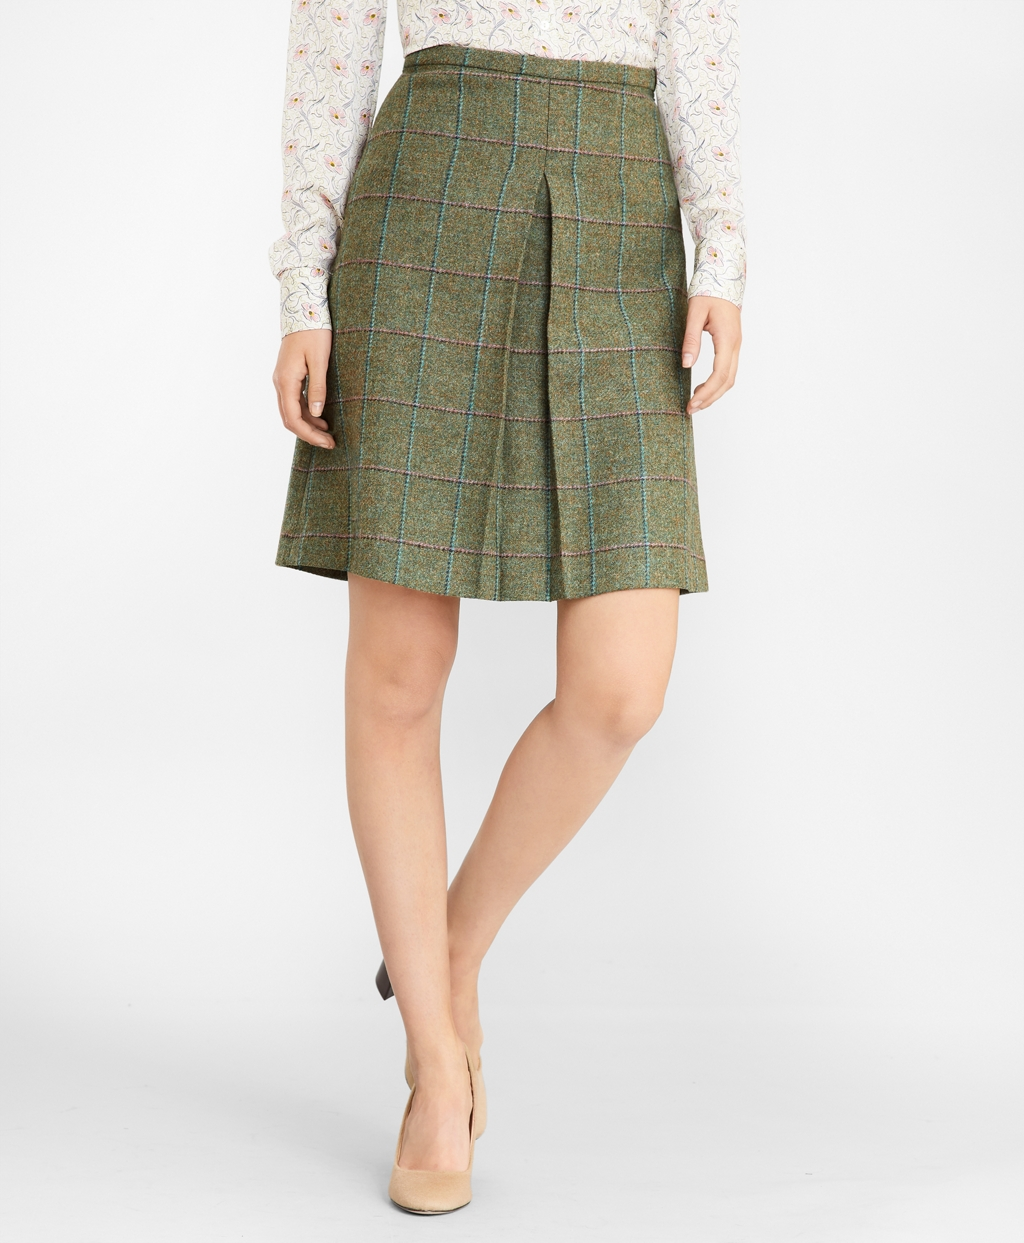 1940s Style Skirts- Vintage High Waisted Skirts Brooks Brothers Womens Checked Wool Tweed Skirt $208.60 AT vintagedancer.com